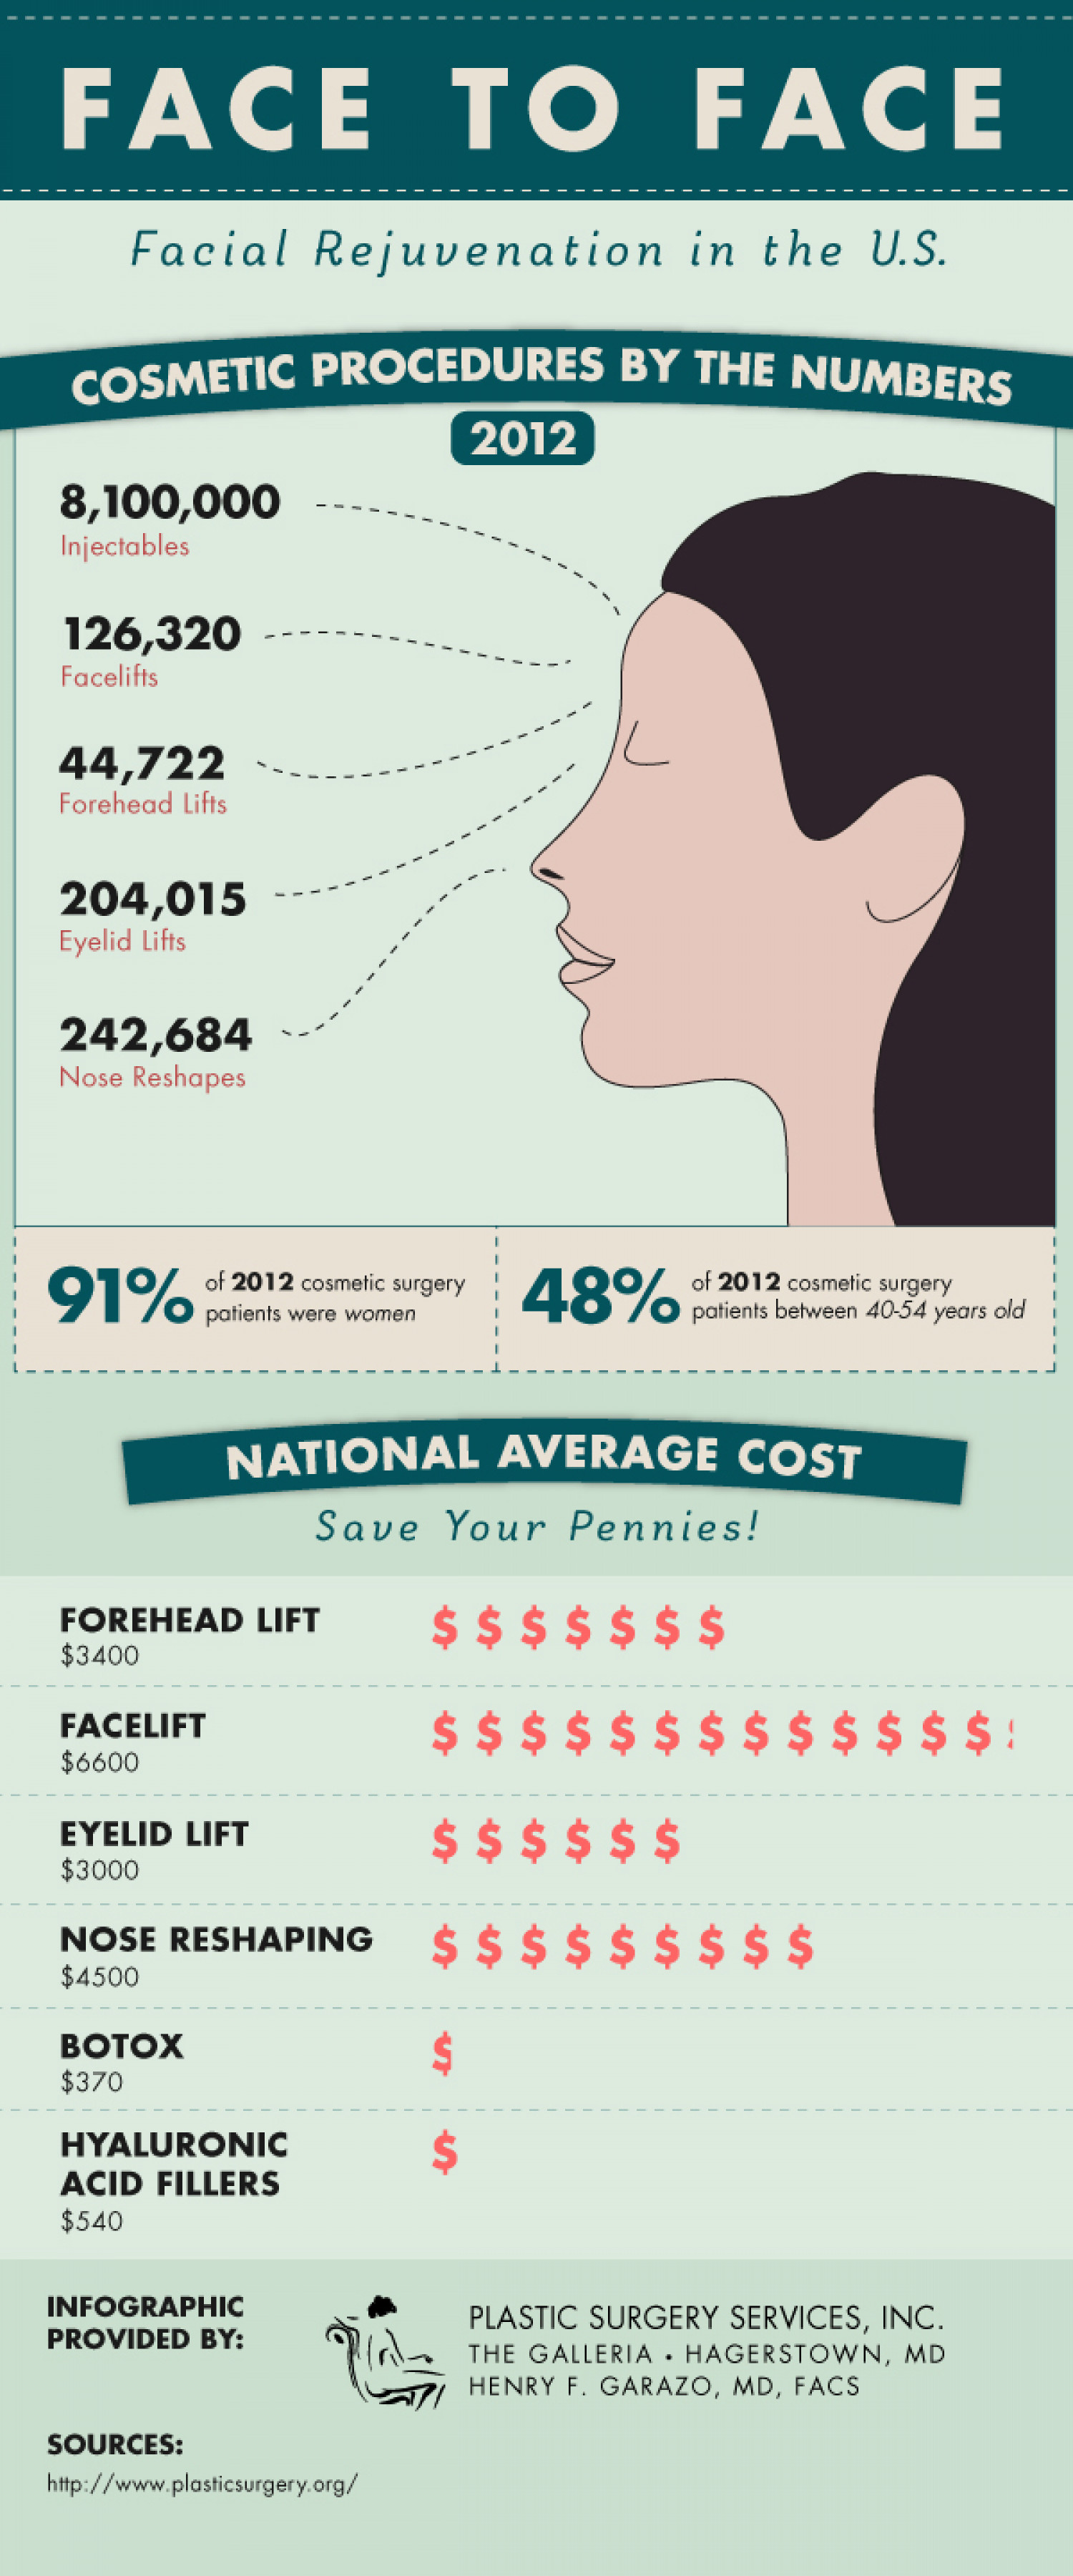 Face to Face Infographic